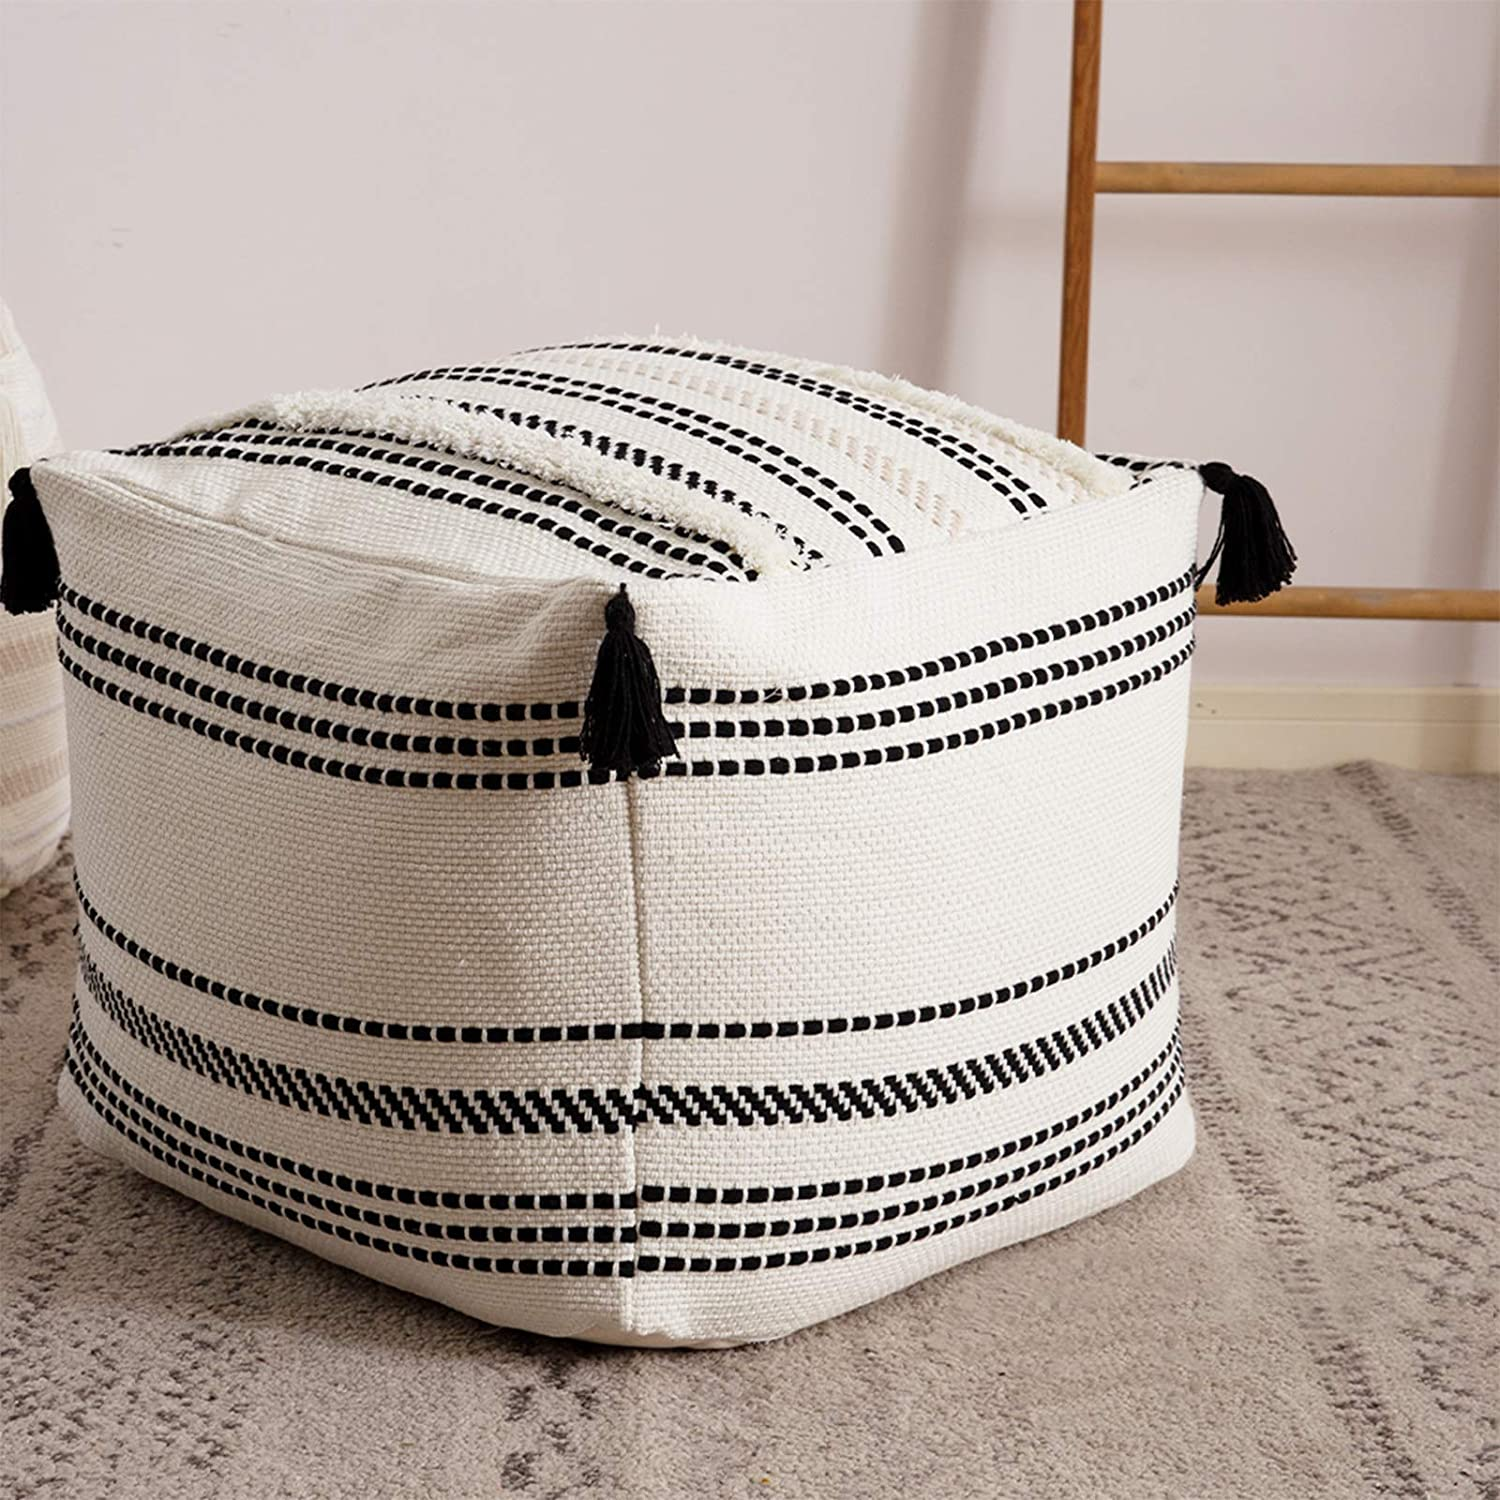 Stripe Morocco Tufted Boho Decorative Unstuffed Pouf - Black Cream Casual Ottoman Pouf Cover with Big Tassels, Neutral Foot Rest/Cushion Cover ONLY for Bedroom Living Room, 18